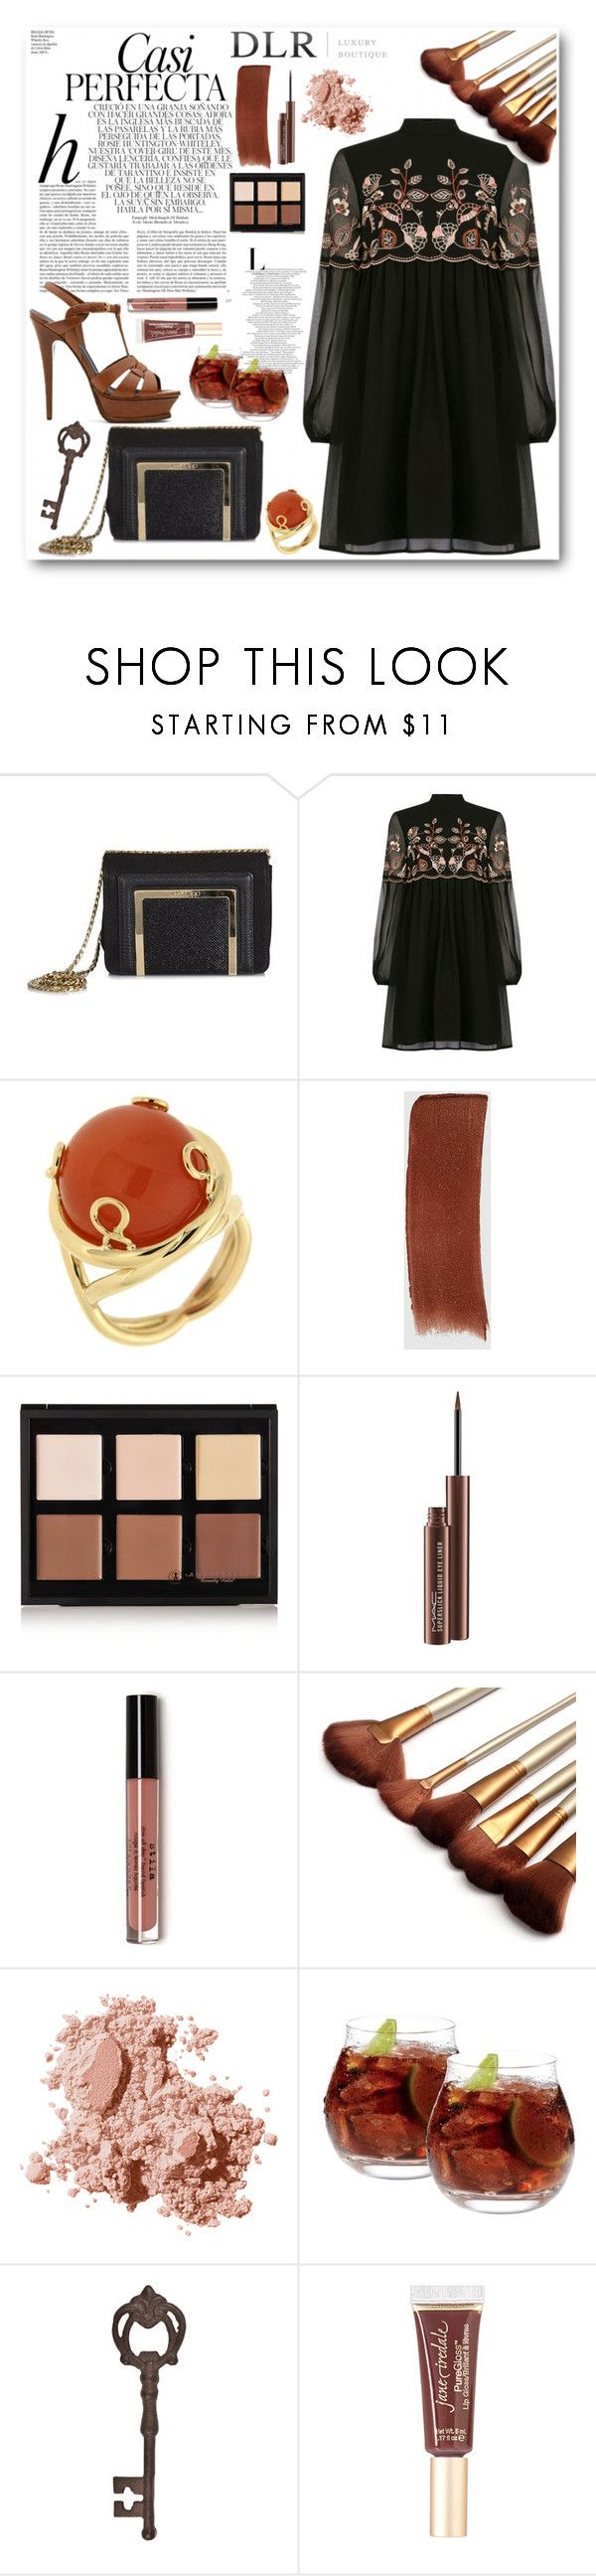 """""""Manuela"""" by ragelove ❤ liked on Polyvore featuring Jimmy Choo, Whiteley, Warehouse, Valentin Magro, Gucci, Anastasia Beverly Hills, MAC Cosmetics, Bobbi Brown Cosmetics, Denby and True Fabrications"""